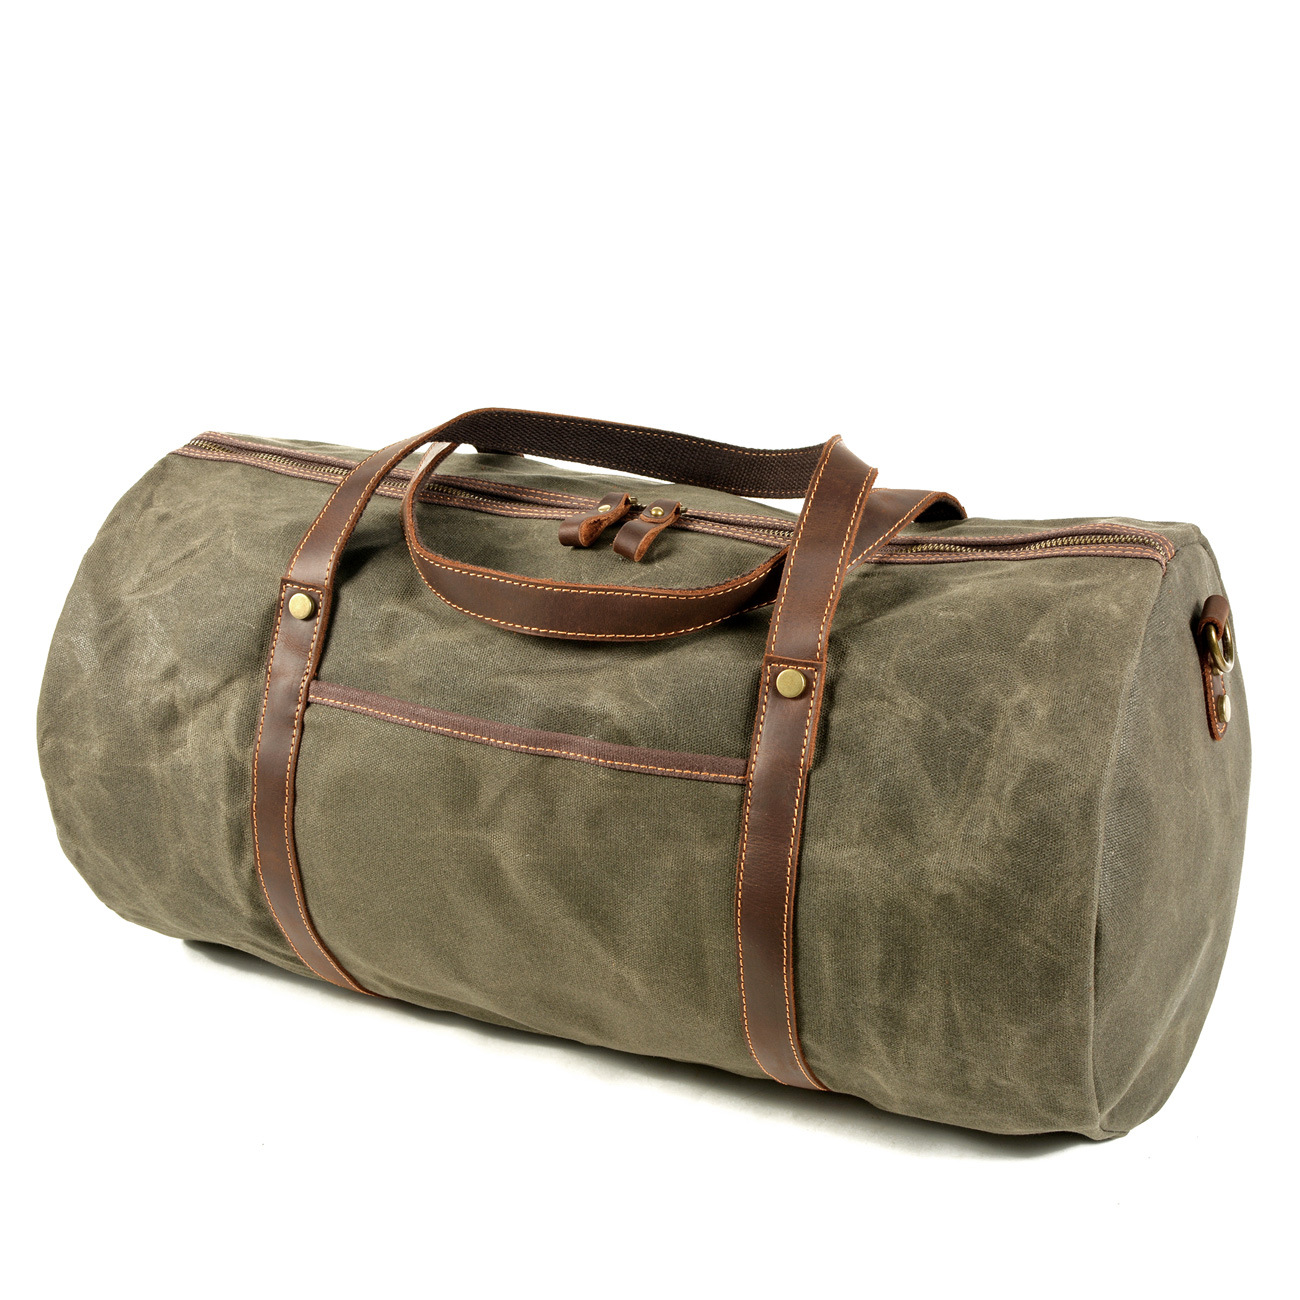 Retro men's travel bag canvas with leather large-capacity luggage bag portable waterproof business travel duffel bag red luggage